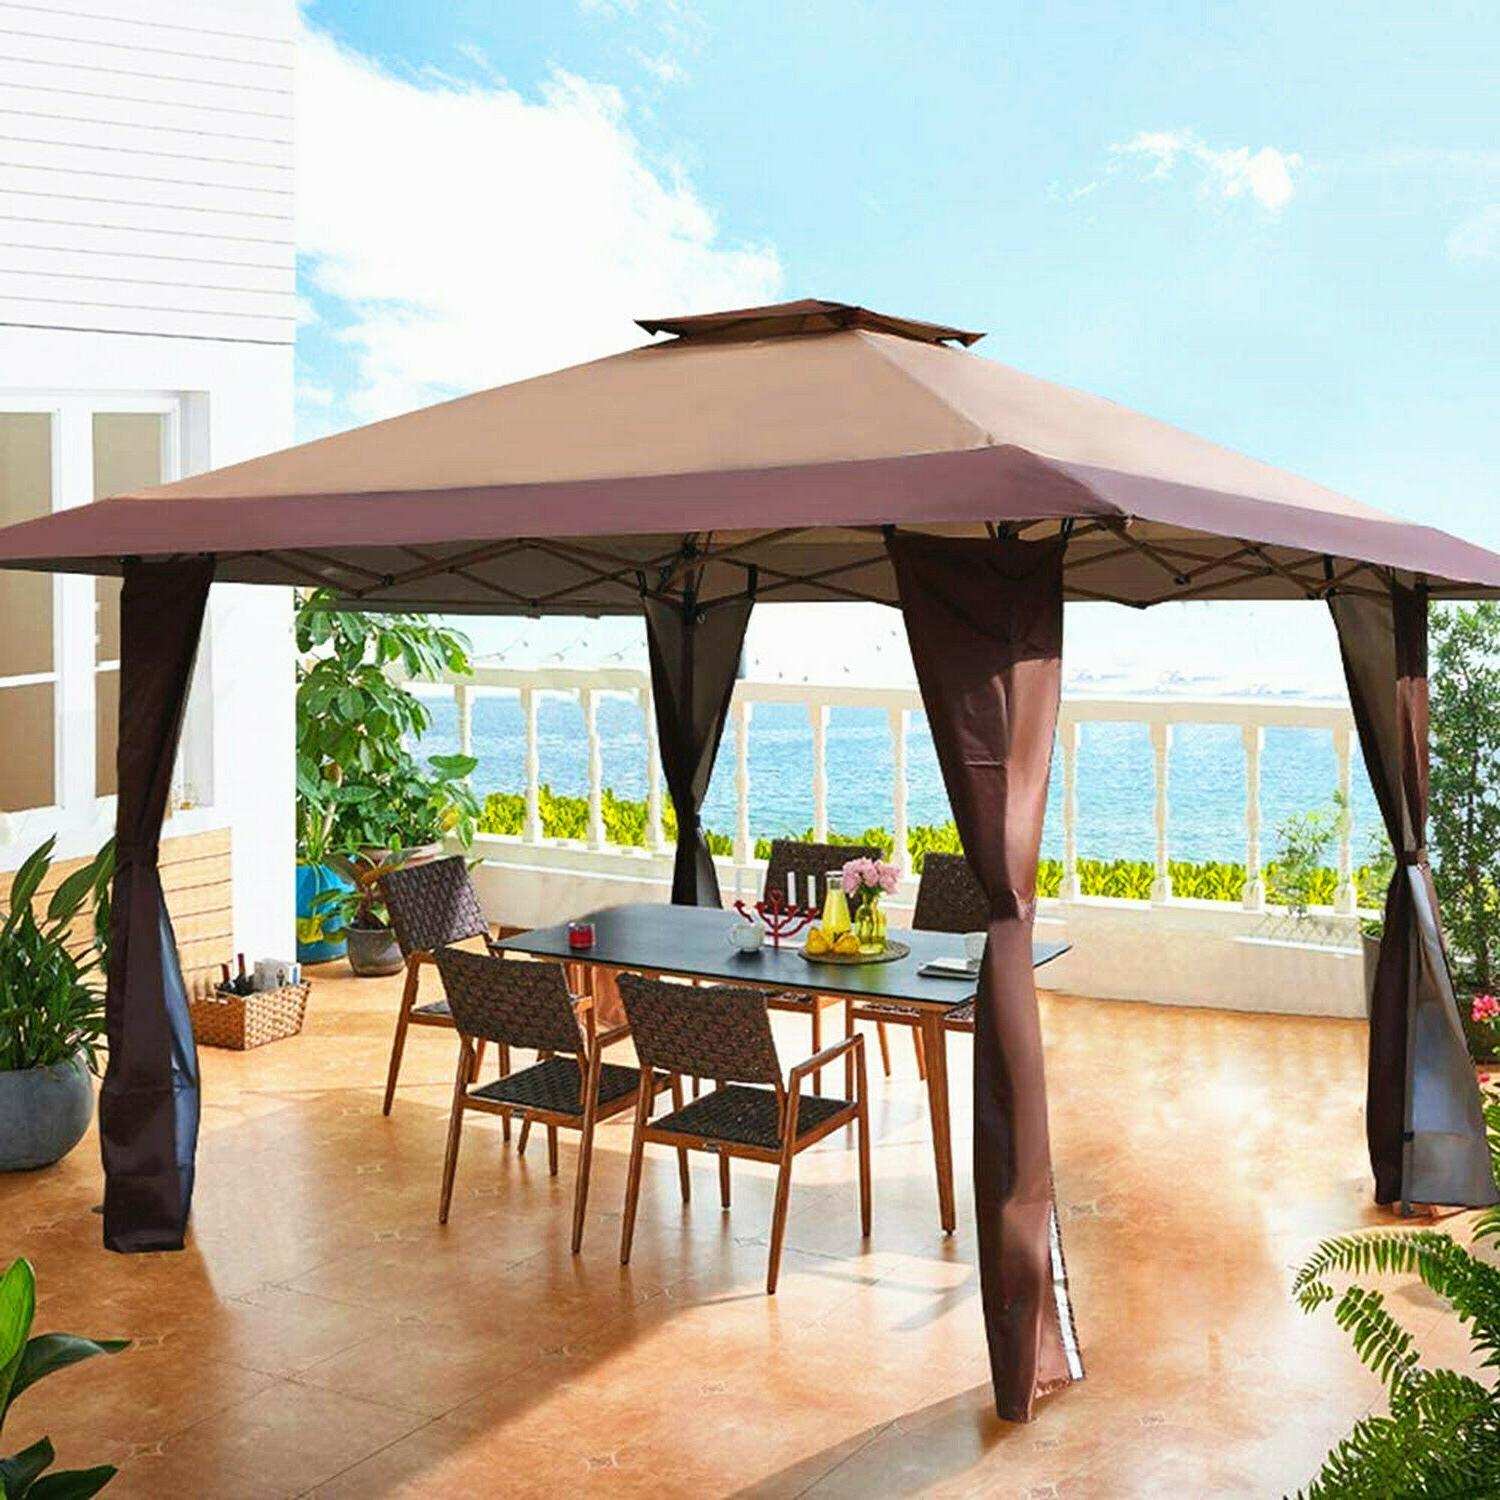 gazebo awning pop up outdoor canopy tent